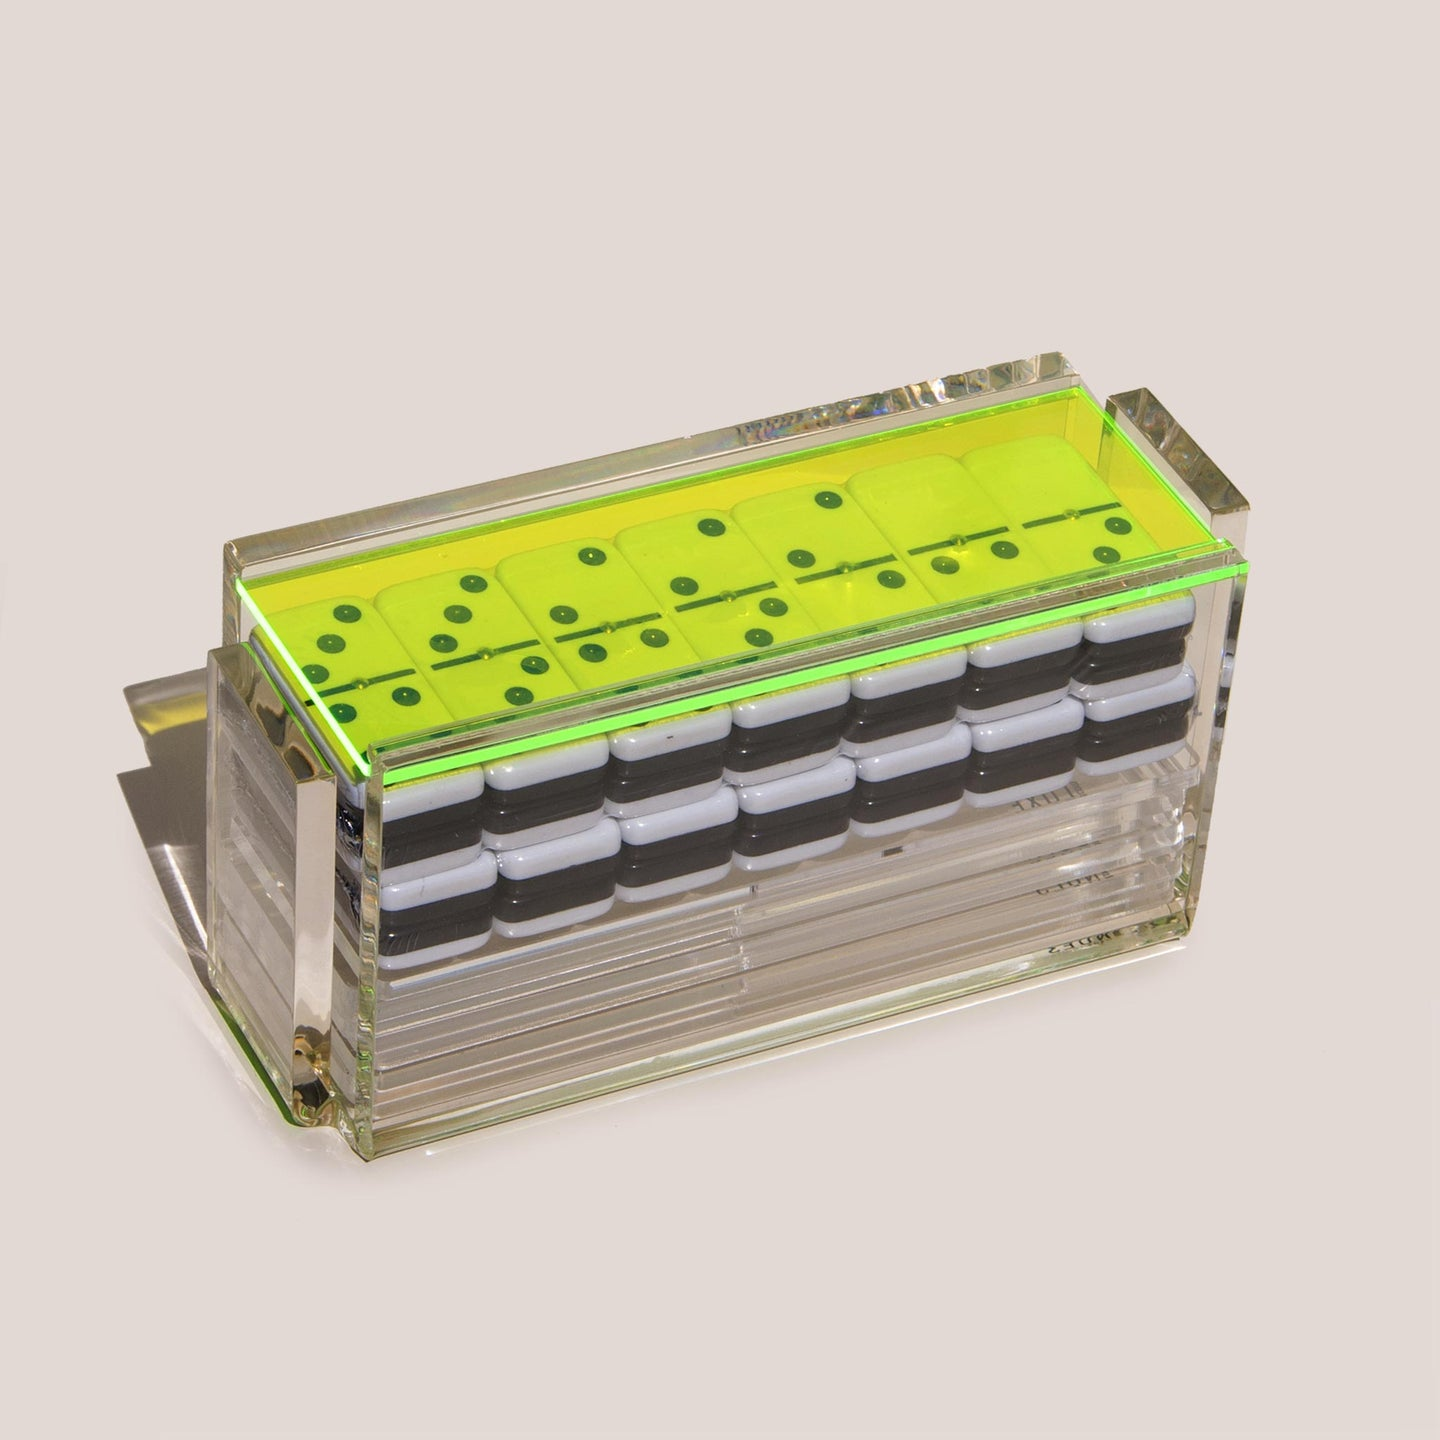 Luxe Dominoes - El Catire Domino Set, Neon Green, available at LCD.